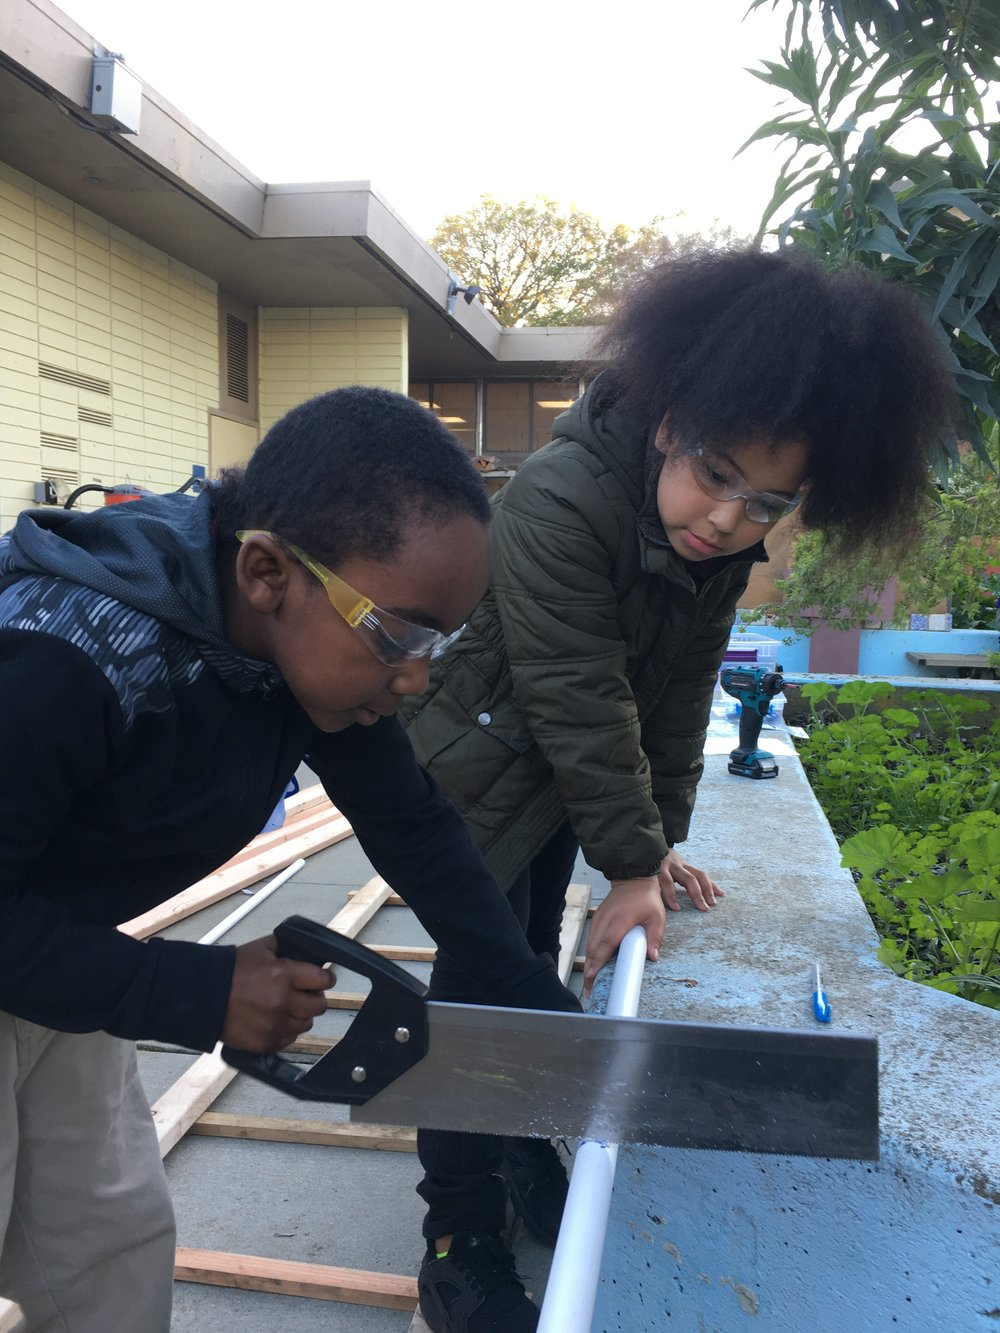 Jayden and MauRae used hand saws for the first time to cut PVC pipe.